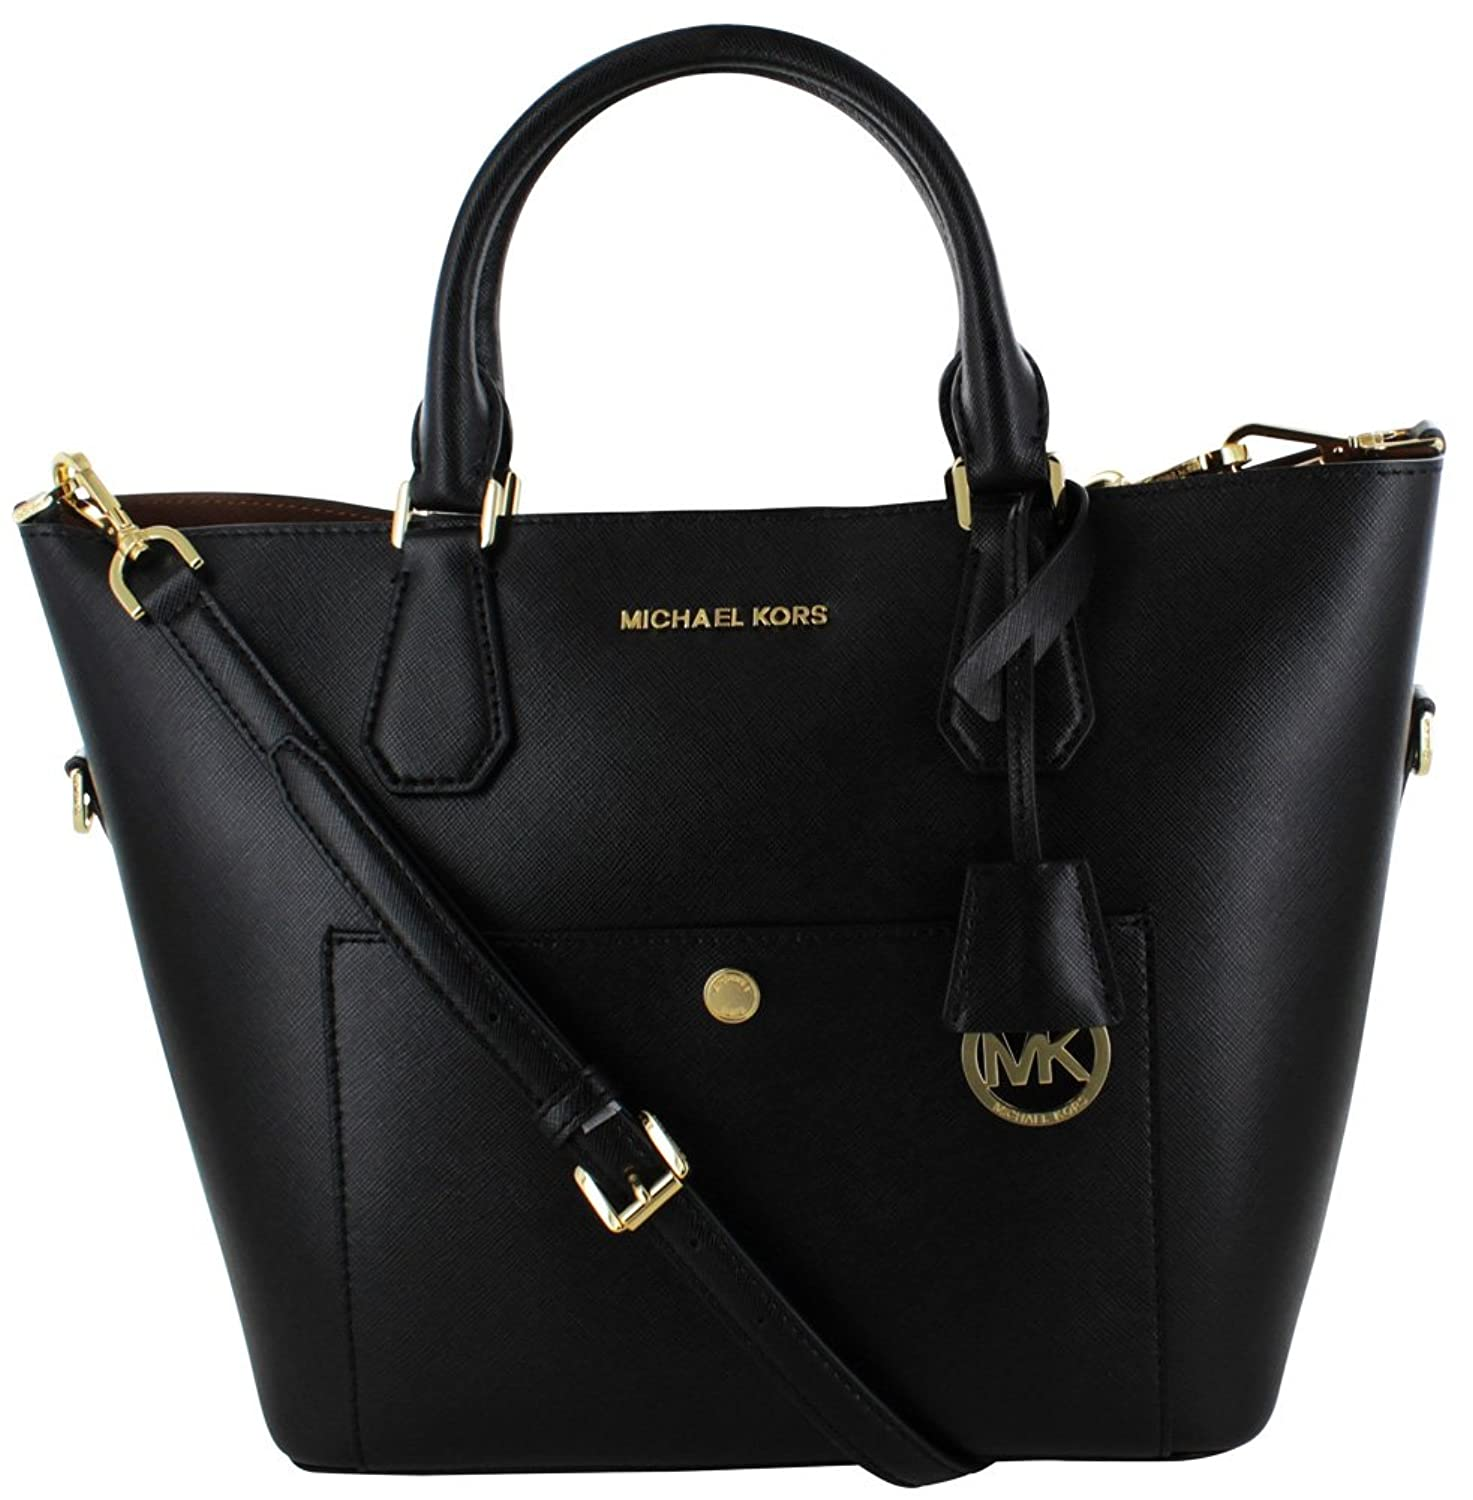 michael kors 358 greenwich large leather grab bag handbag. Black Bedroom Furniture Sets. Home Design Ideas